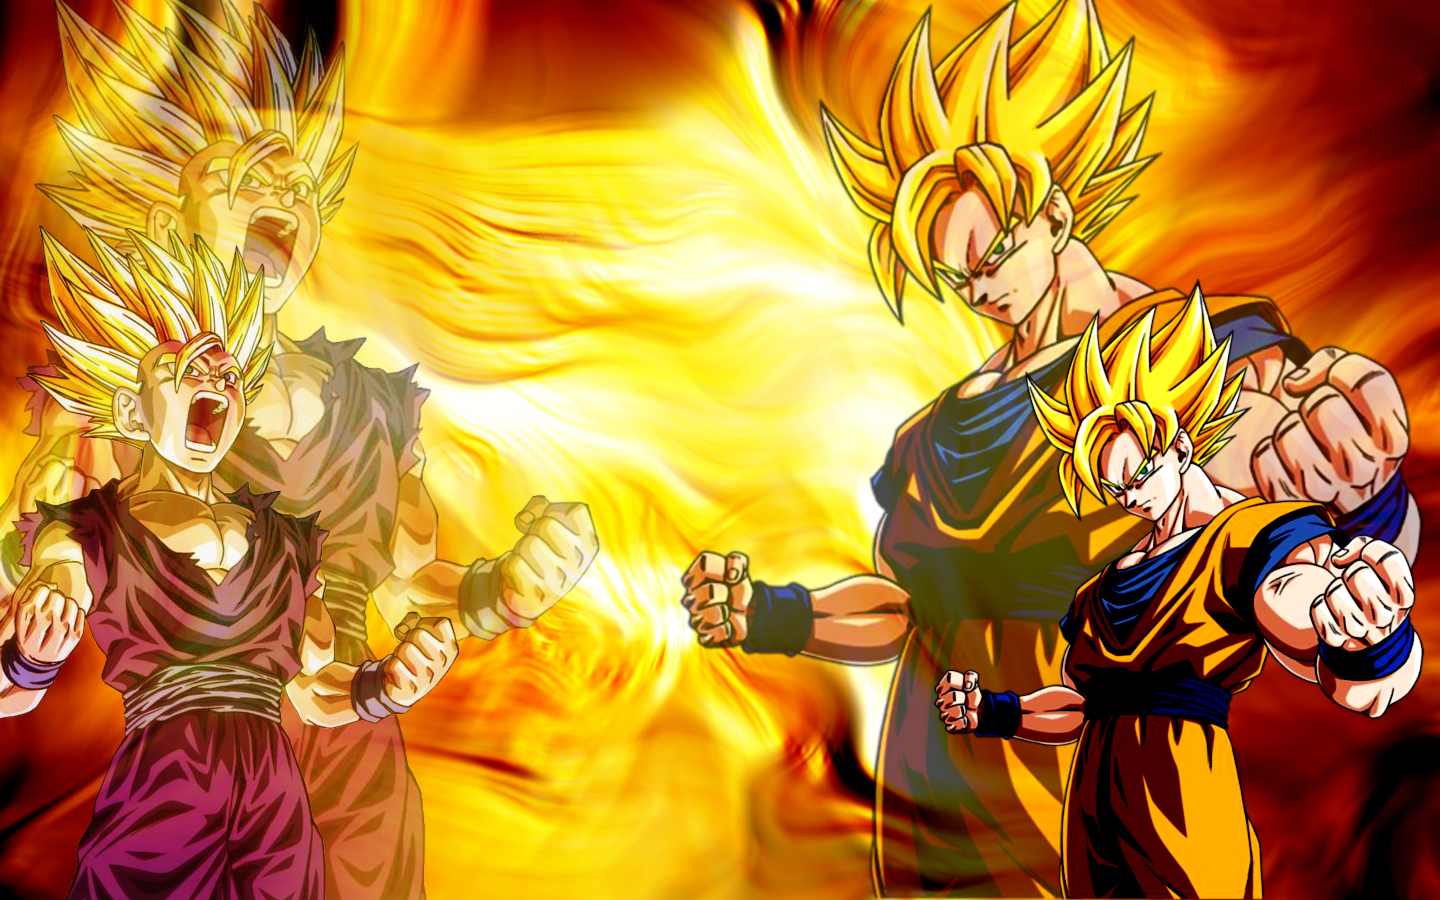 Cool Dragon Ball Z Wallpaper